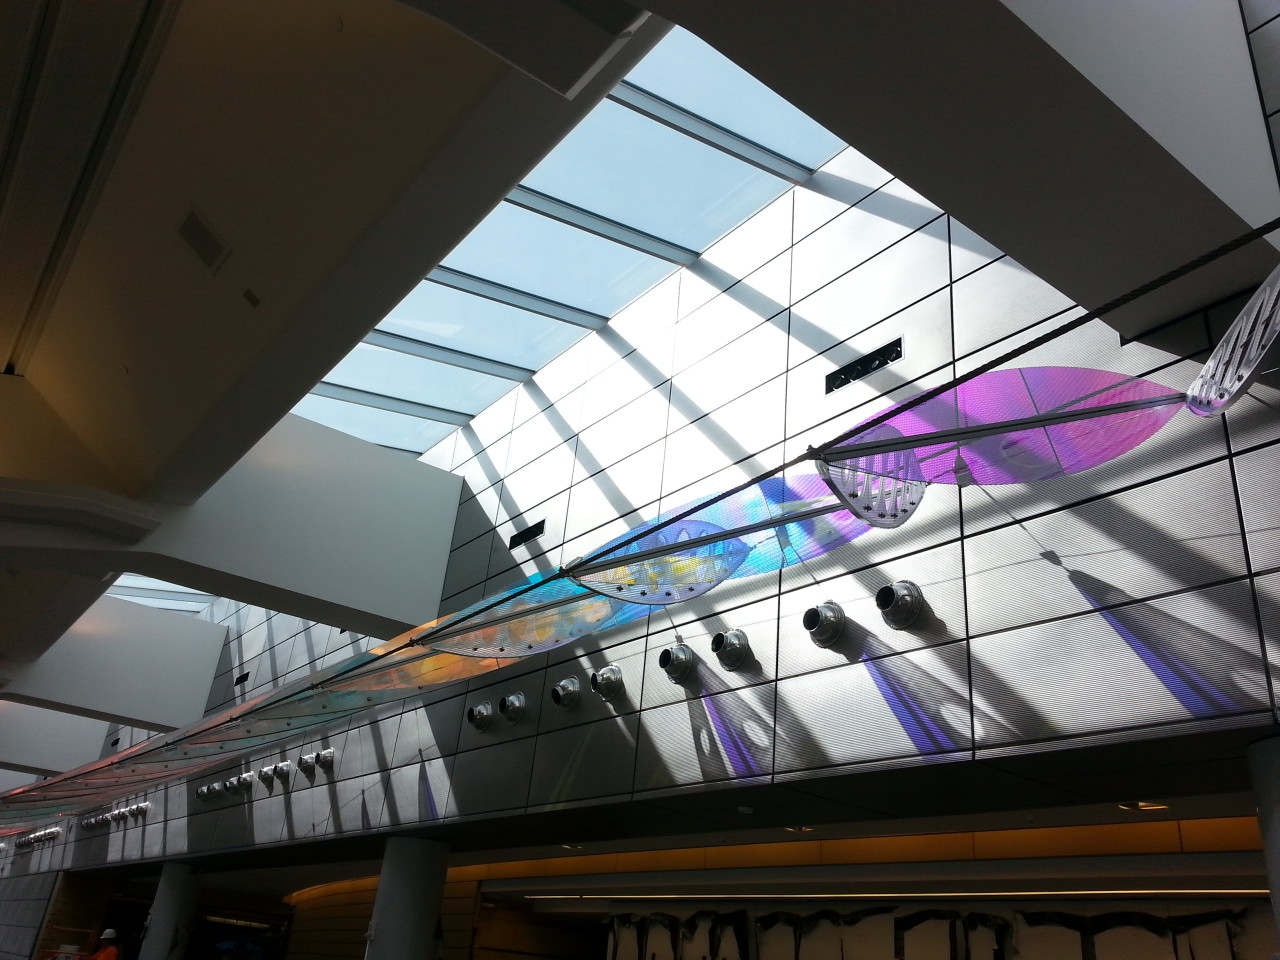 Ed Carpenter's Wichita Dwight D. Eisenhower National Airport signature sculpture Aloft delights travelers with colorful laminated safety dichroic glass above as well as producing ever changing color patterns on the walls. / image 11